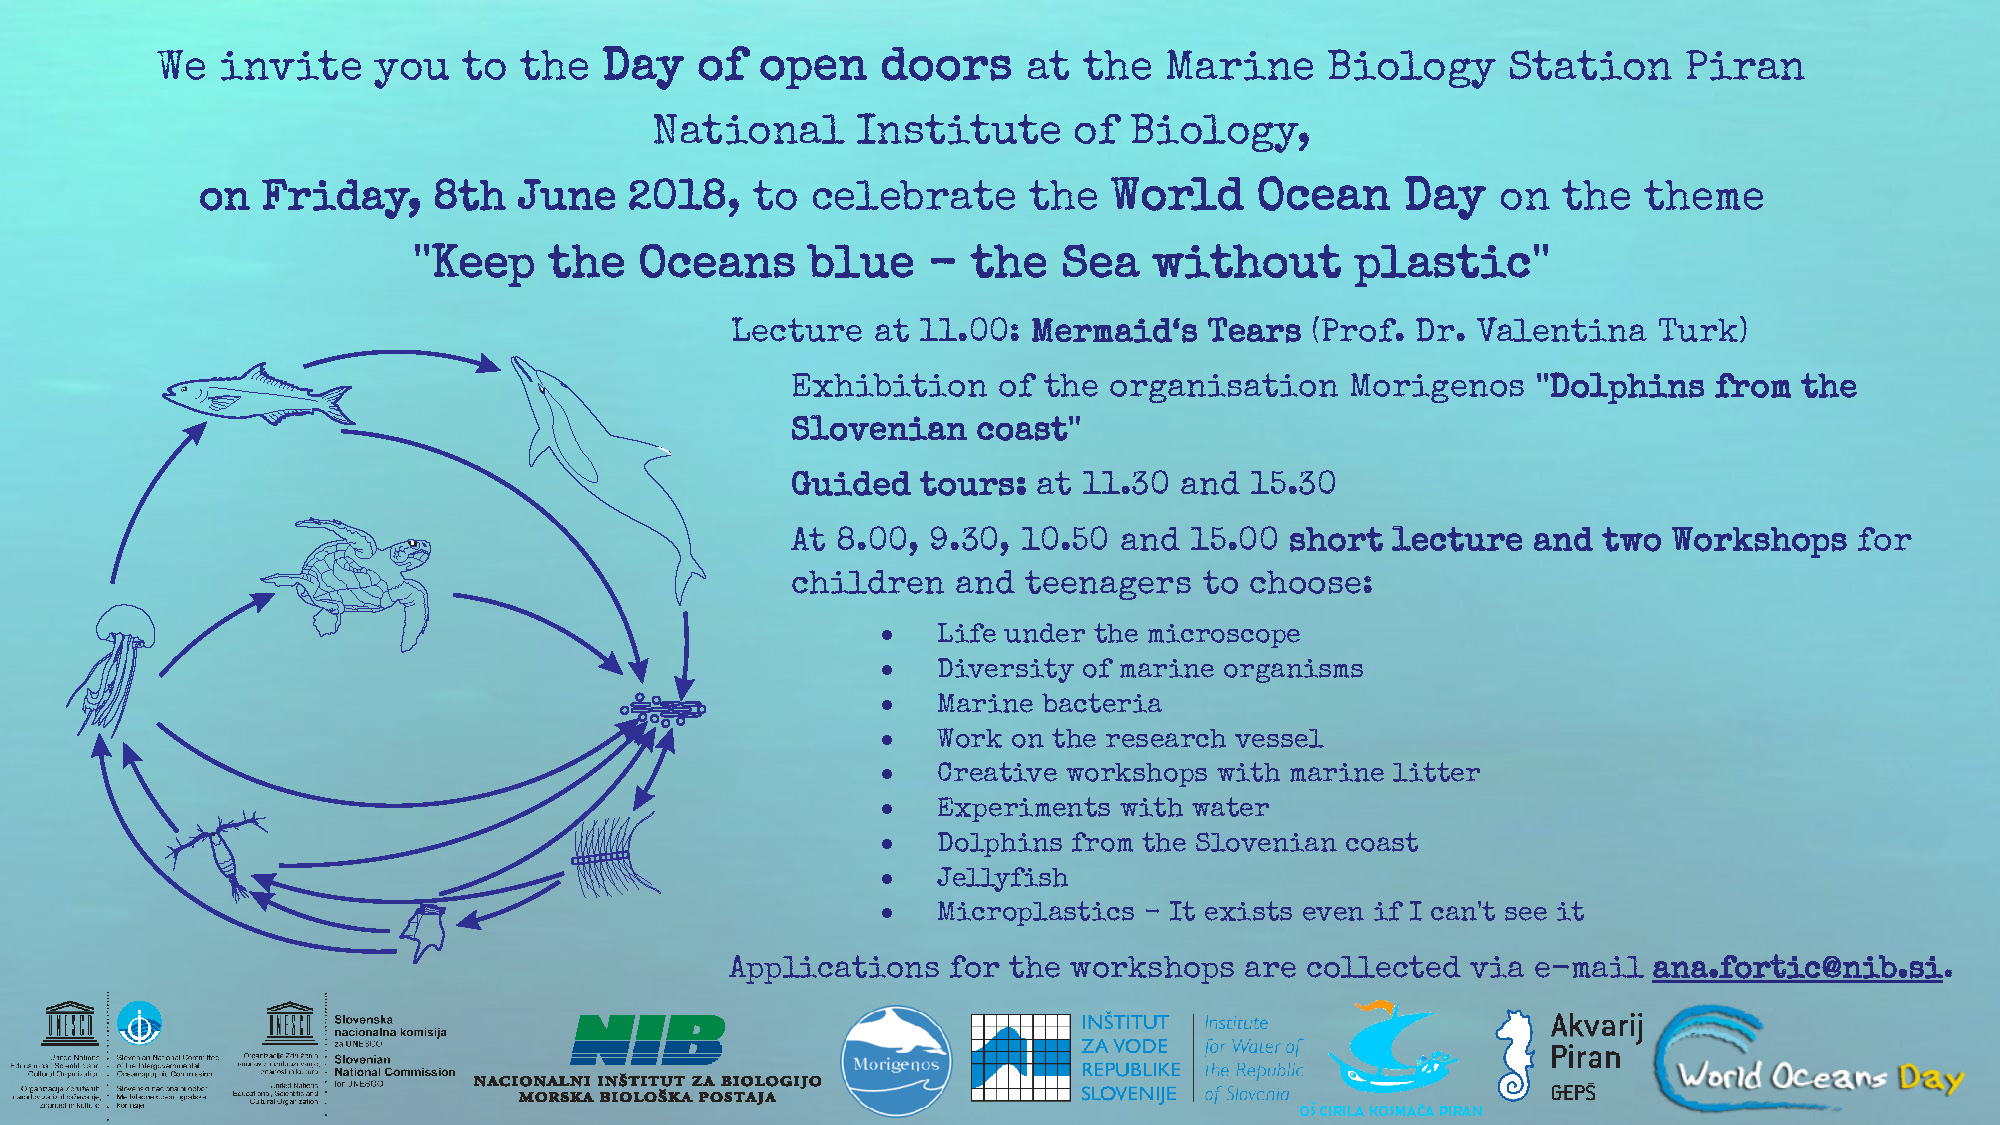 the-day-of-open-doors-at-the-marine-biology-station-piran-8-6-2018